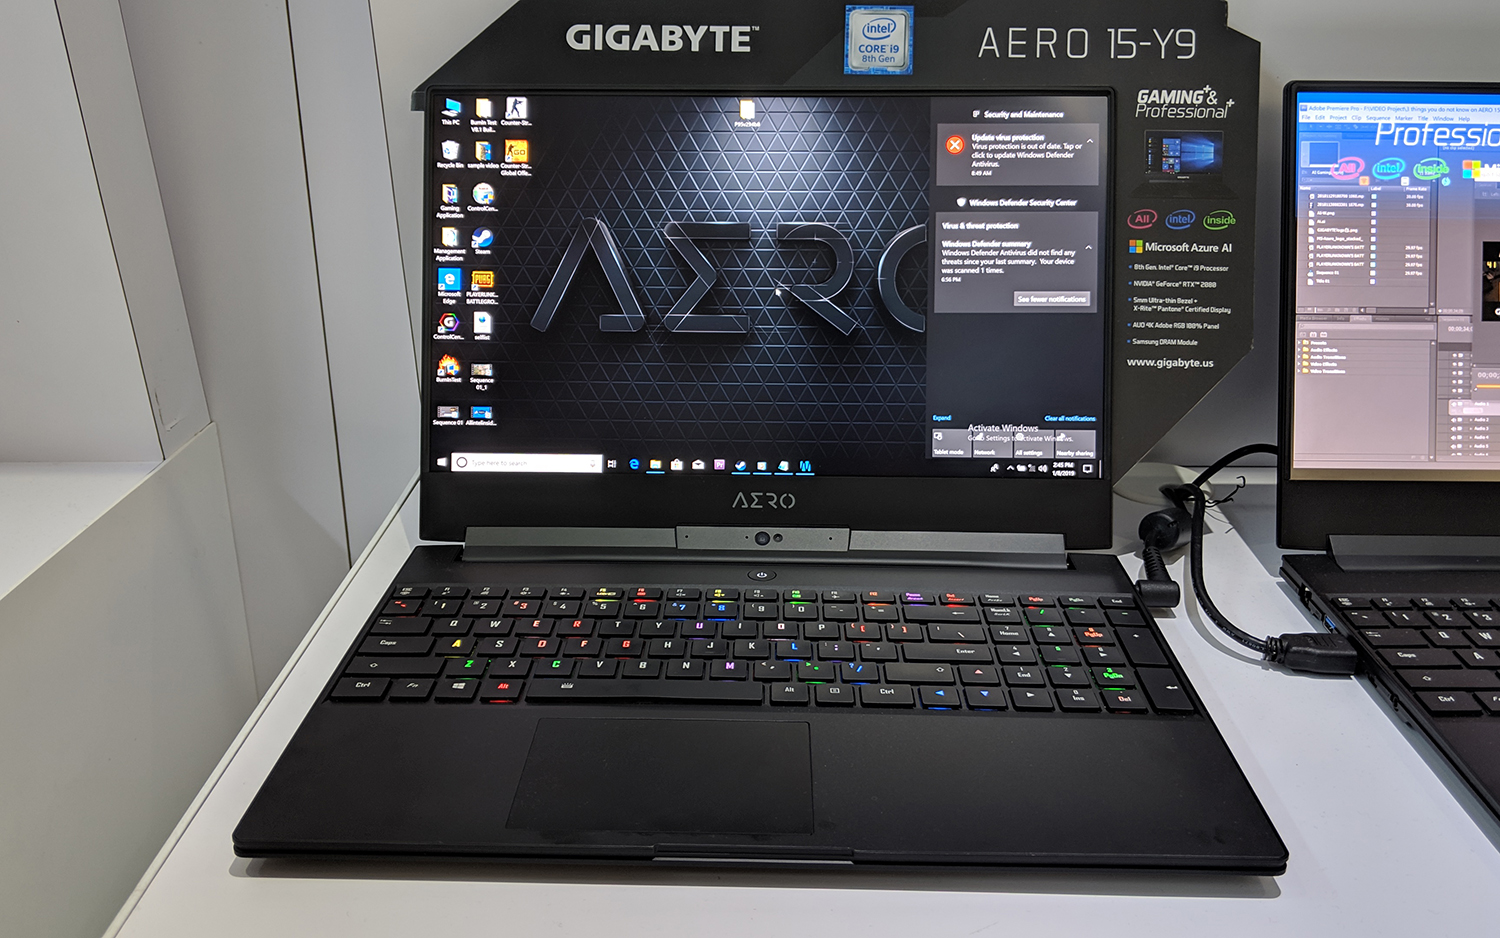 Gigabyte Aero 15 Y9 gaming laptop